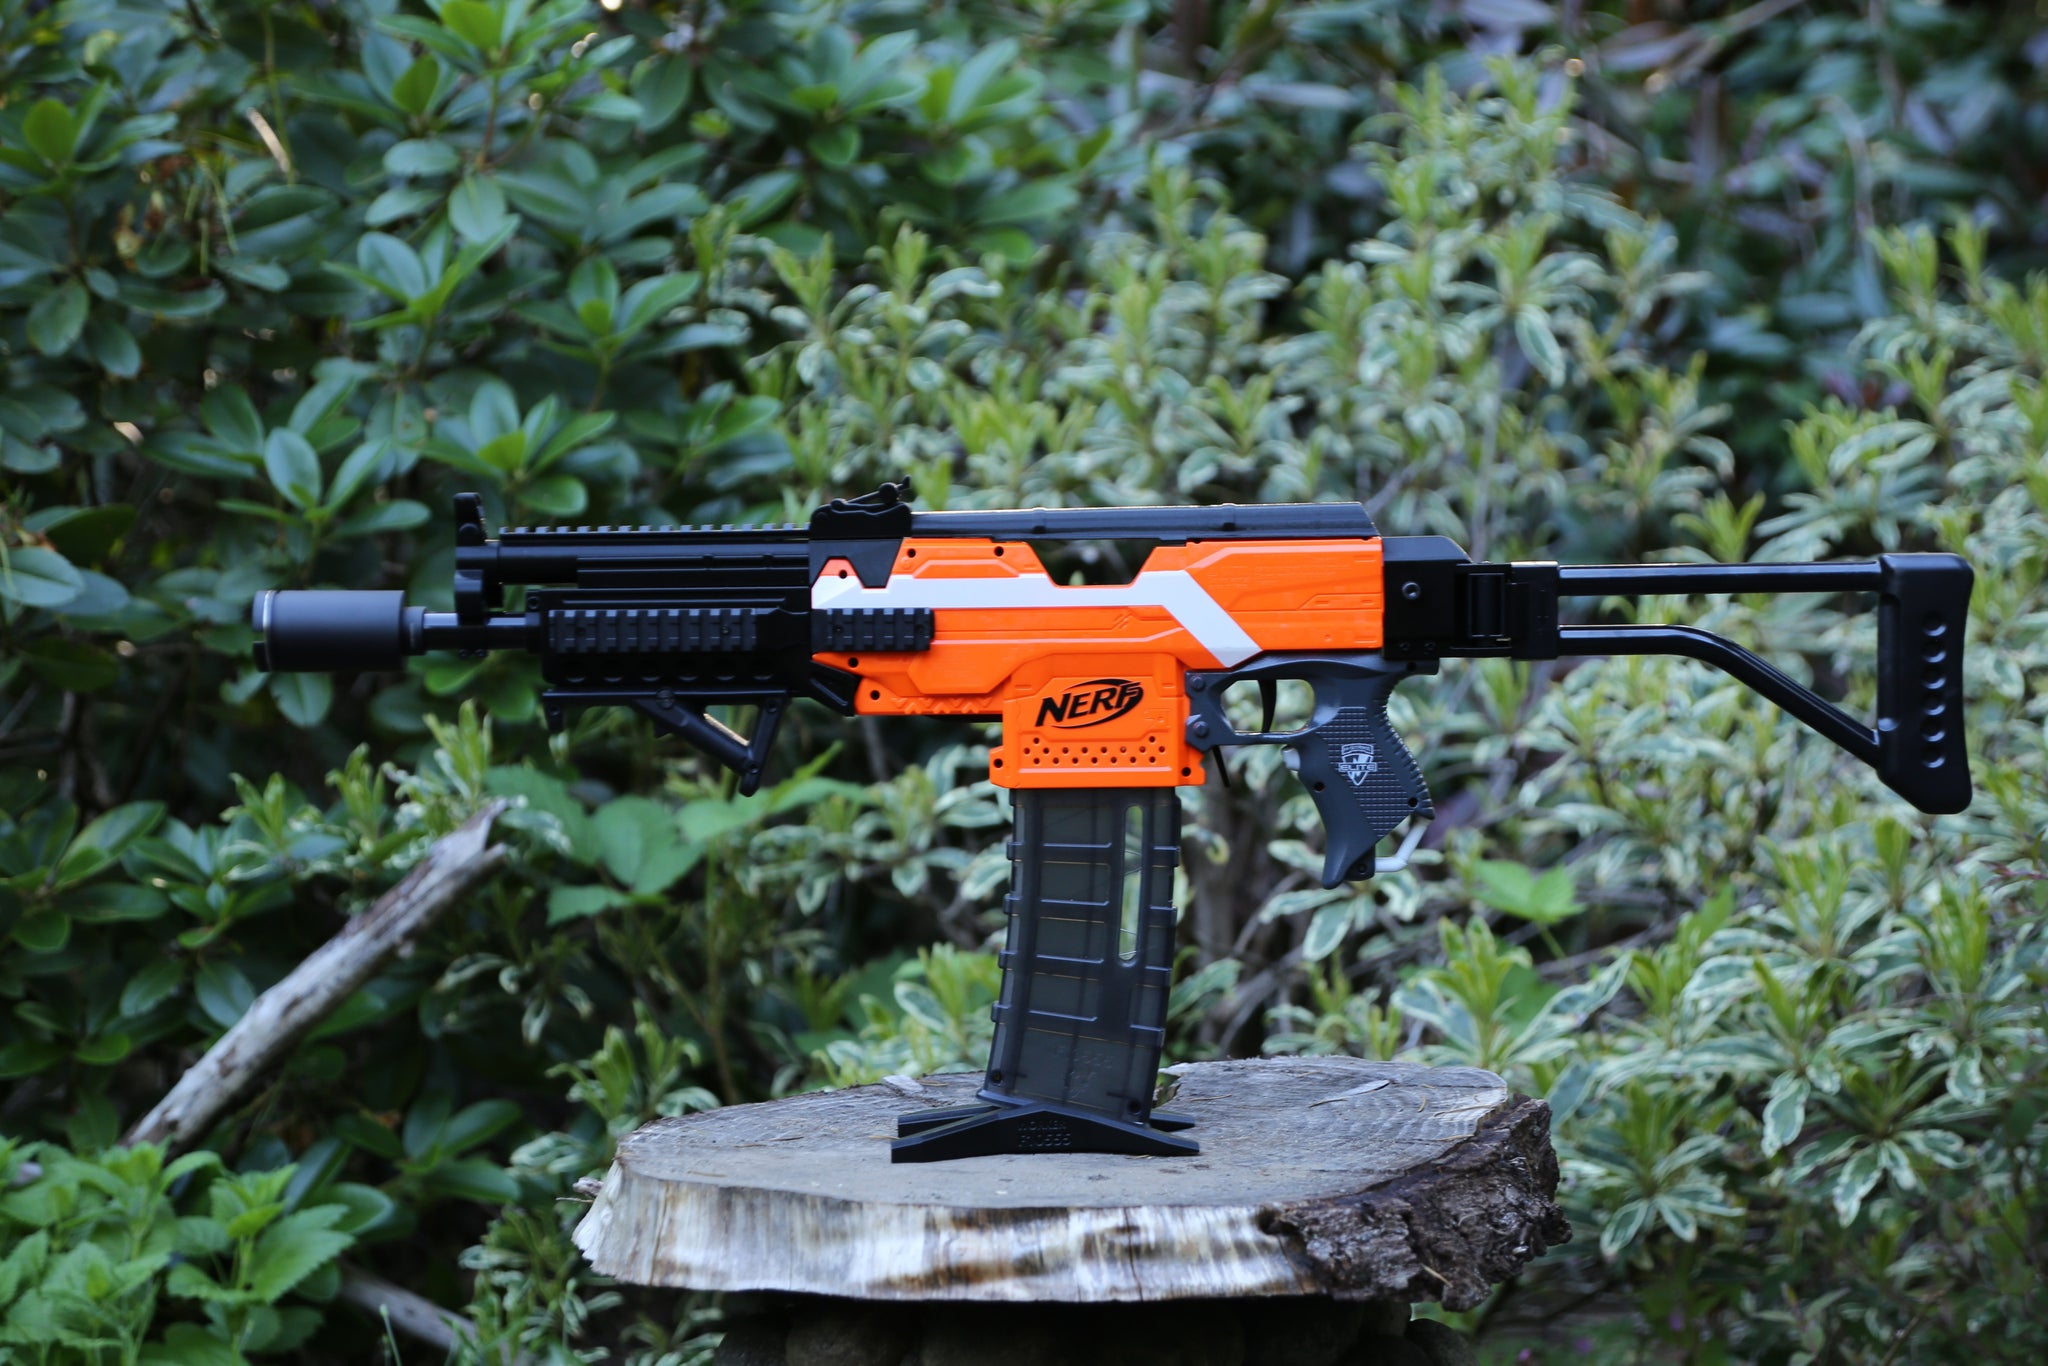 Xplorer Tactical Replica Nerf Gun Rifle Toy, Toys & Games, Others on  Carousell